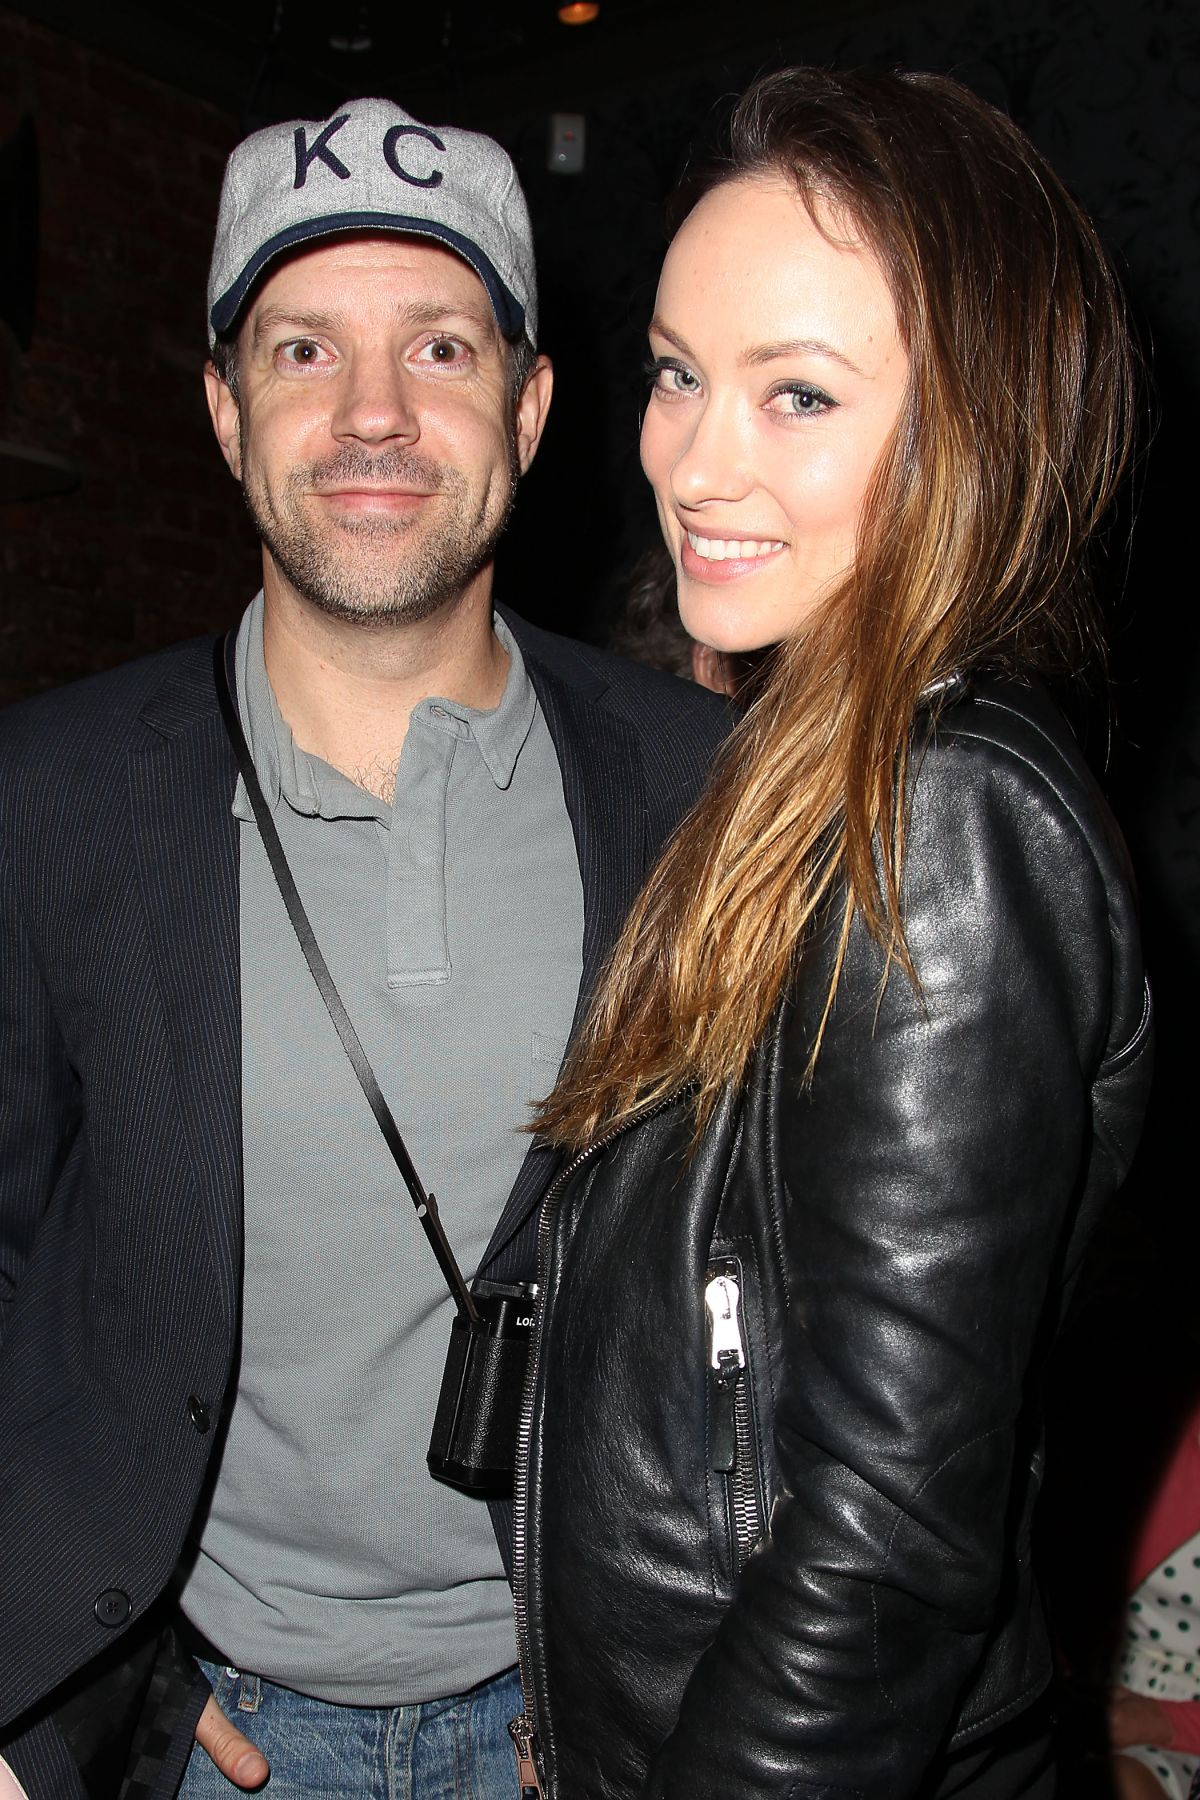 OLIVIA WILDE at Welcome to Me After Party in New York